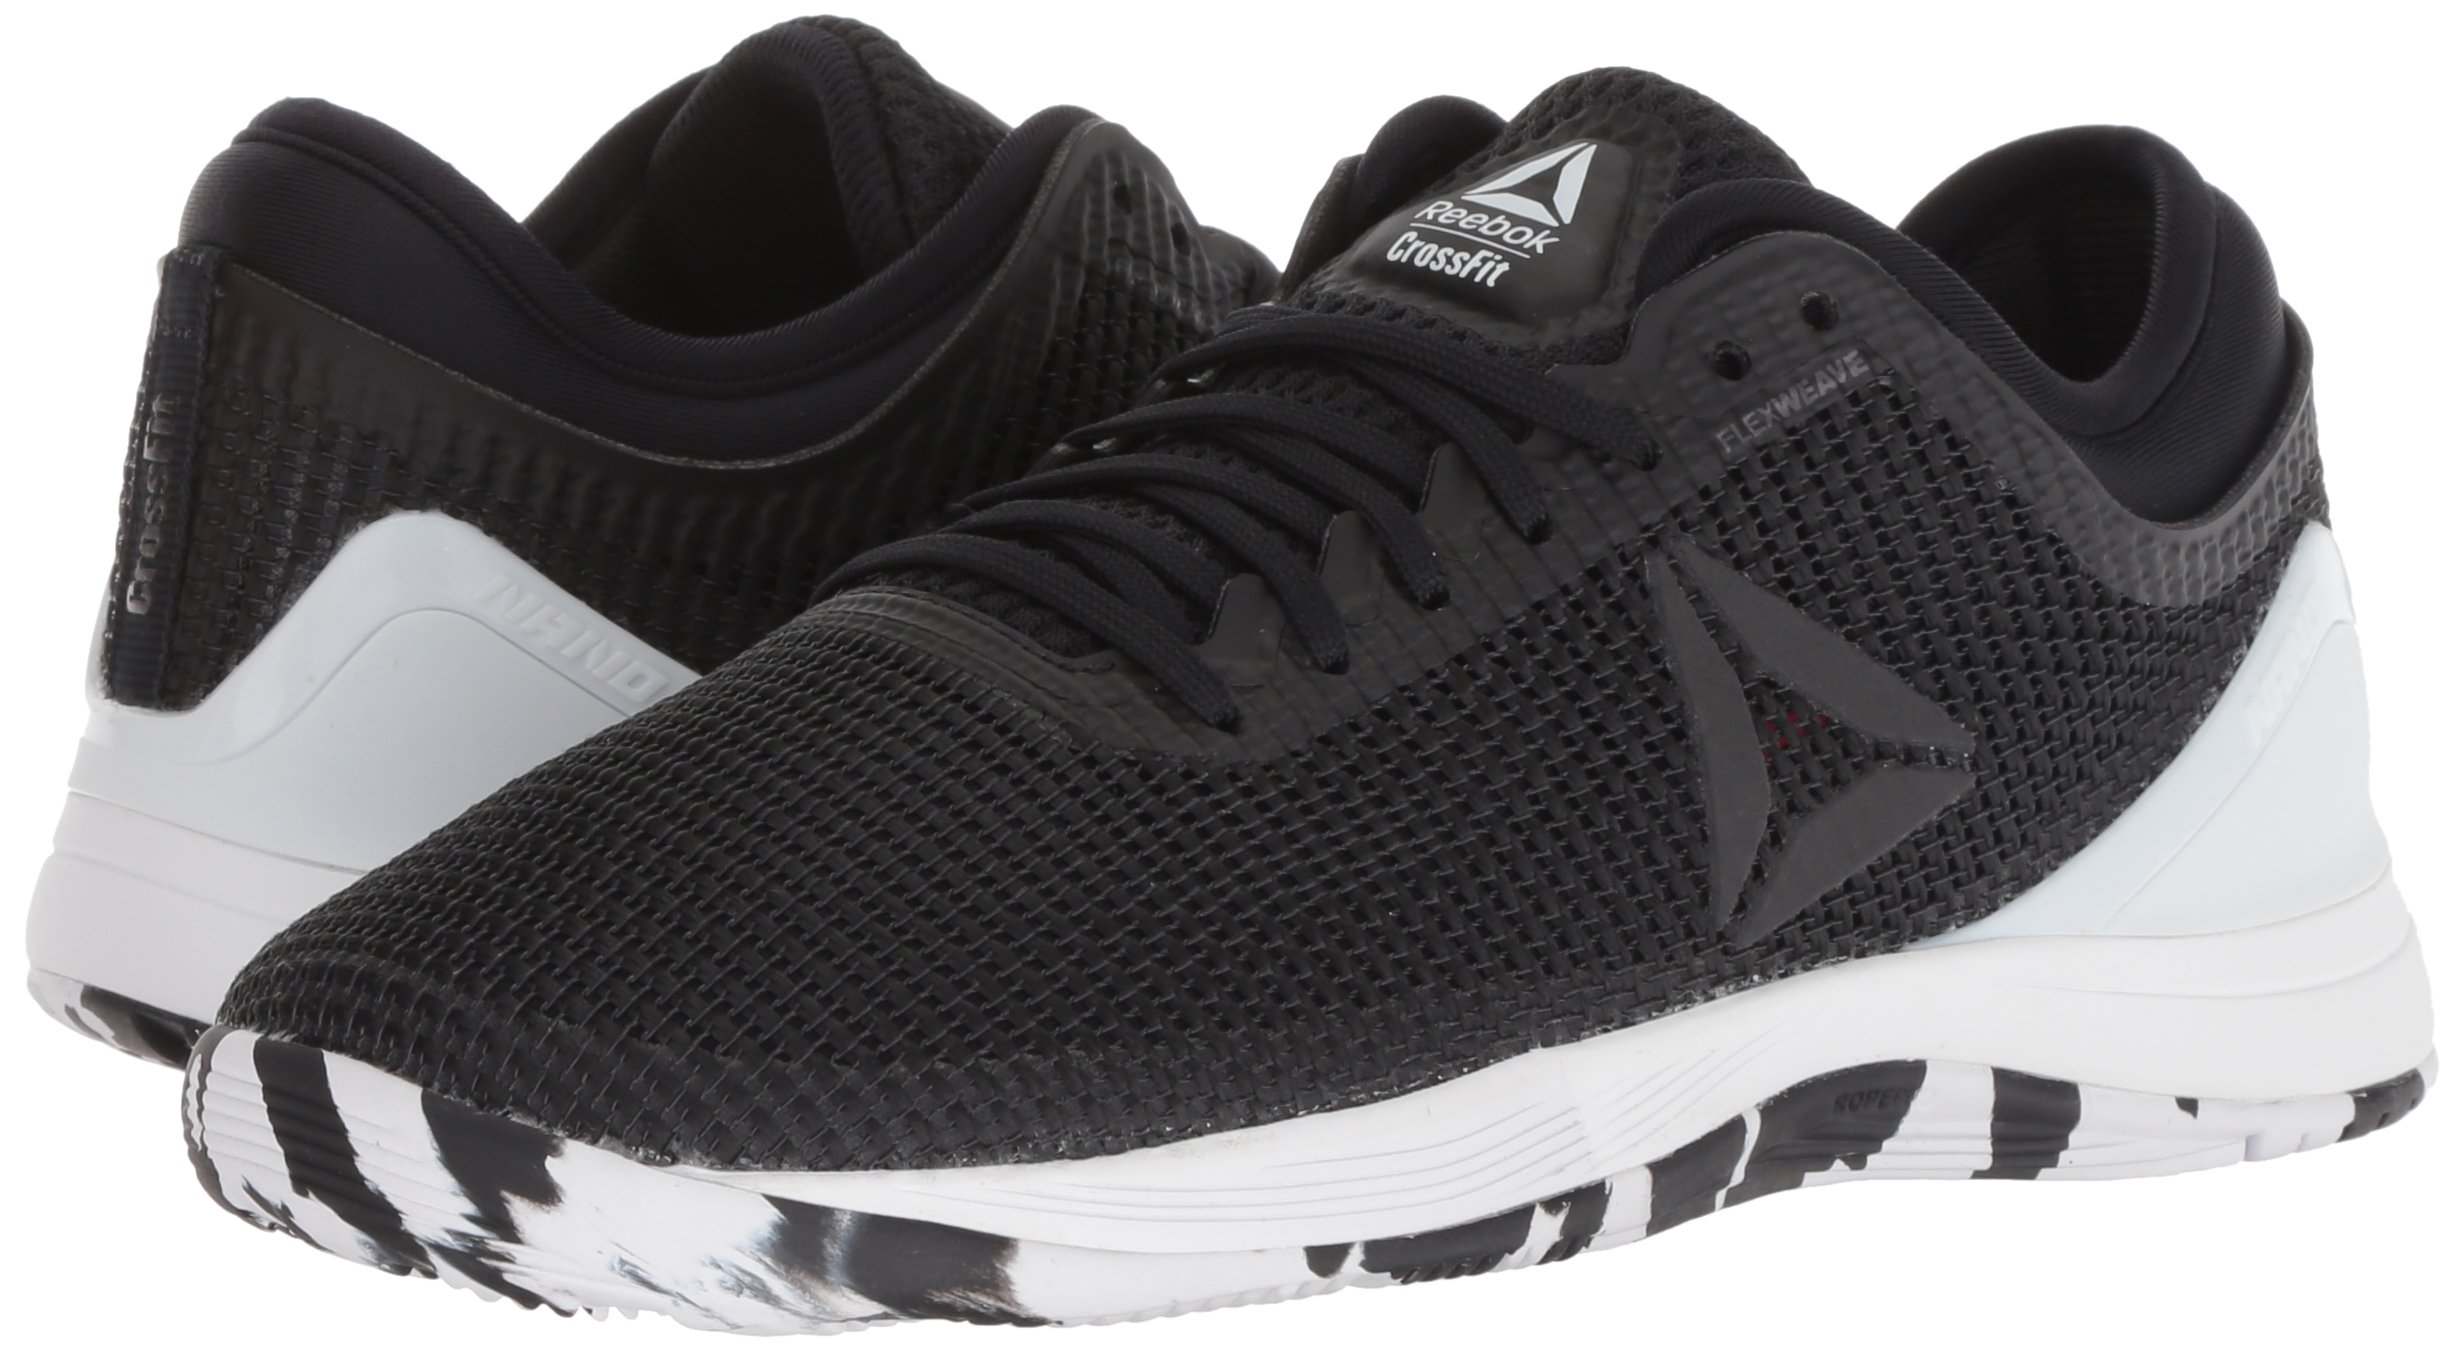 Reebok Women's CROSSFIT Nano 8.0 Flexweave Cross Trainer, Black/White/Twisted Pink, 5 M US by Reebok (Image #6)